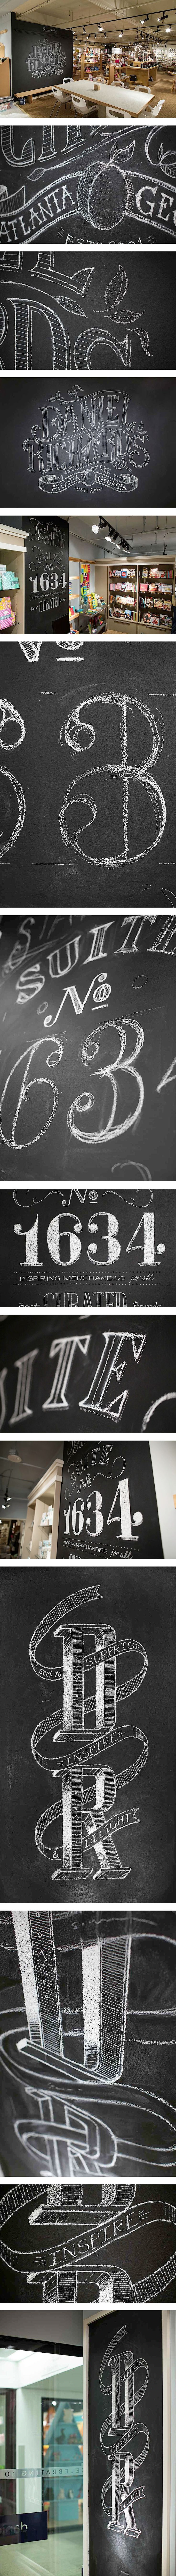 Chalk Lettering Installations by Chris Yoon